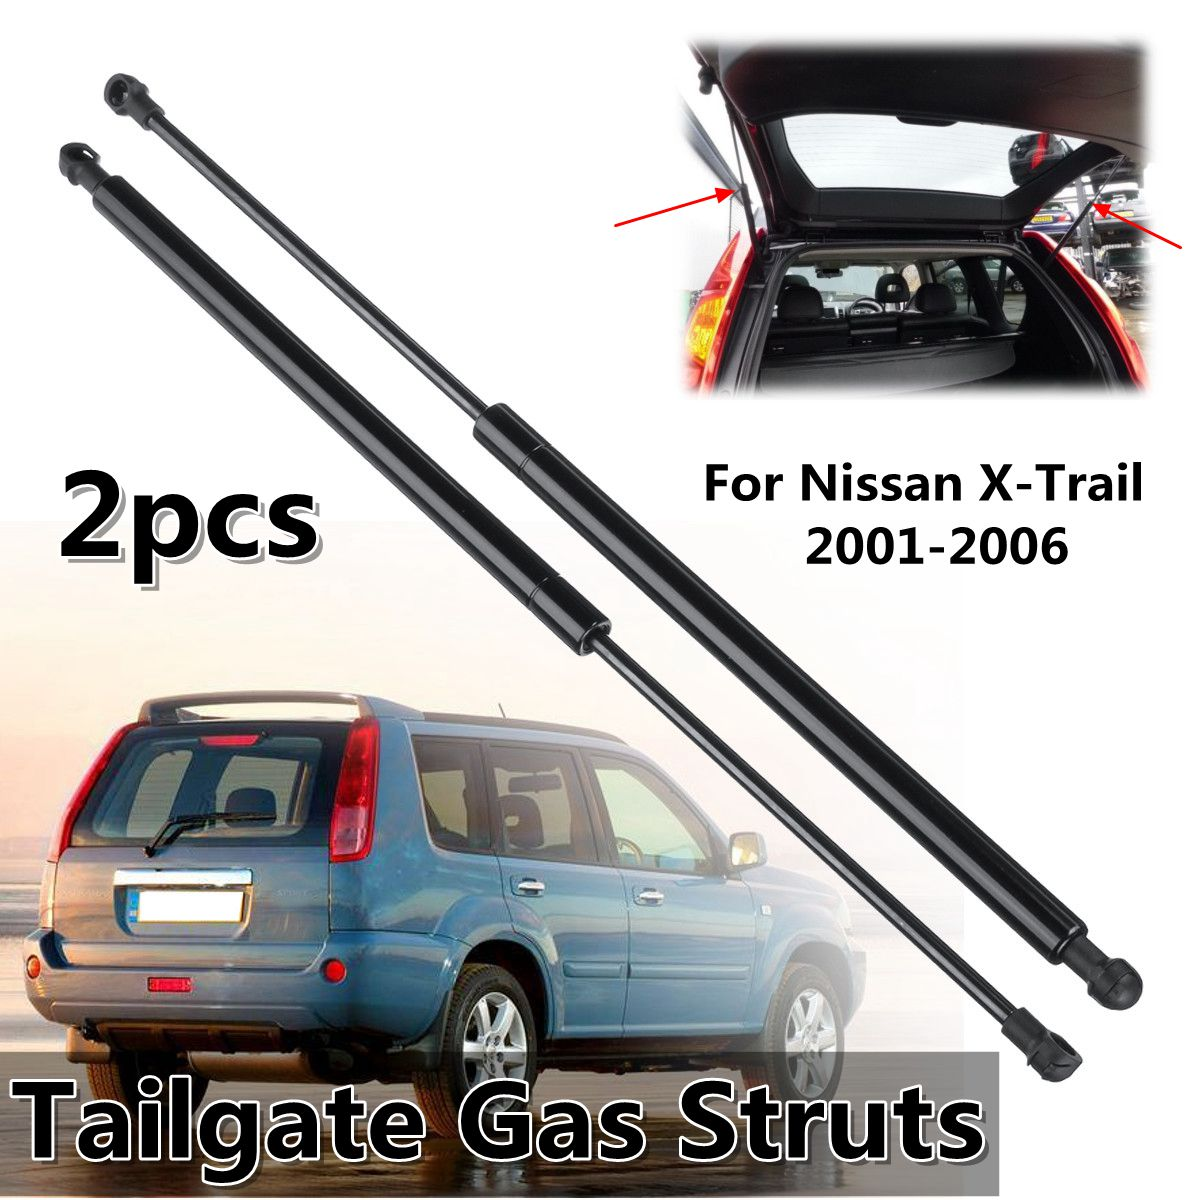 2Pcs Tailgate Trunk Boot Gas Struts Support Spring For Nissan X Trail 2001 2006 90450 8H31A 90451 8H31A 90451 EQ30A|Strut Bars| |  - title=